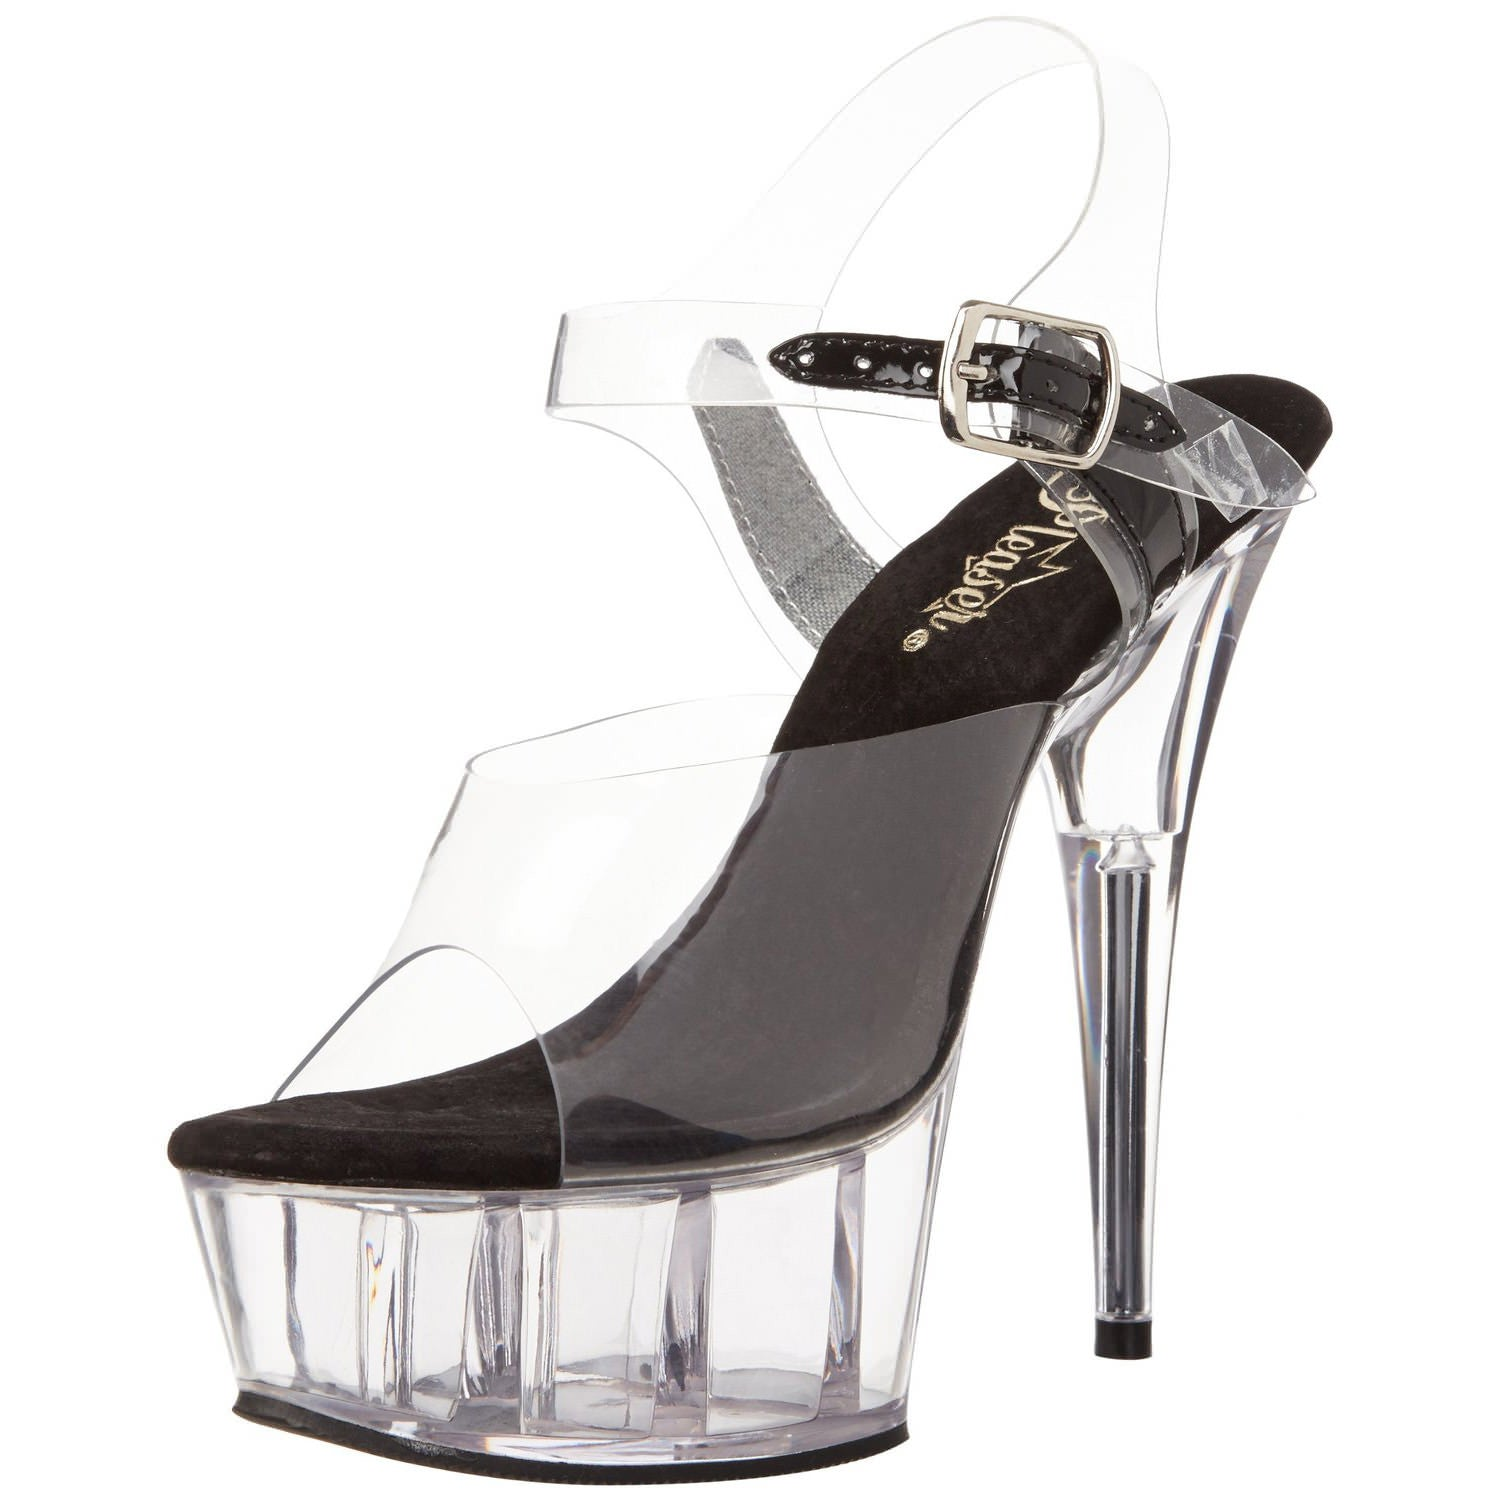 PLEASER DELIGHT-608 Clear-Black-Clear Ankle Strap Sandals - Shoecup.com - 1